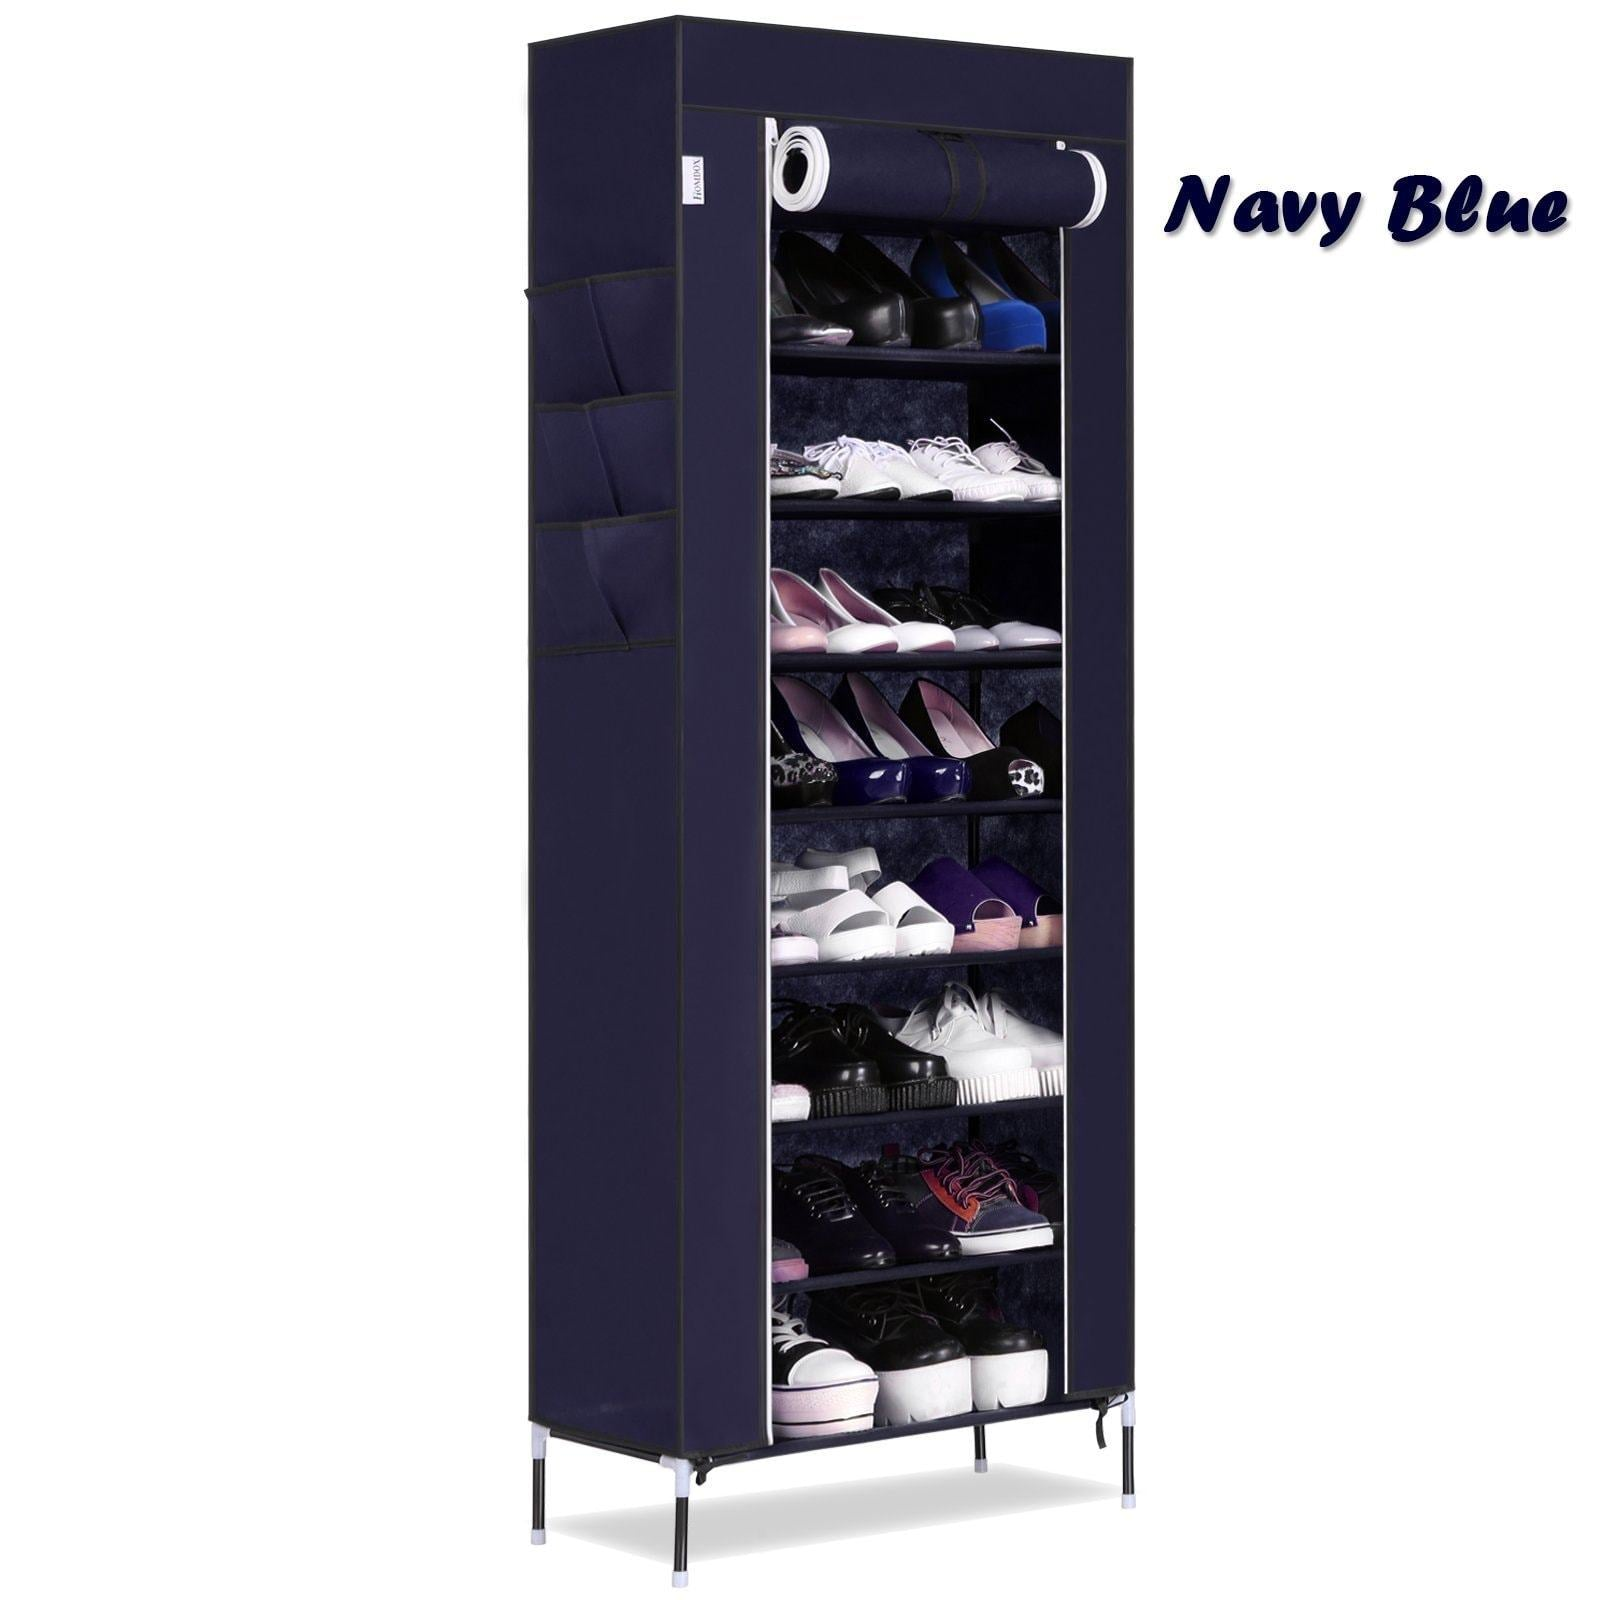 Online shopping bluefringe shoe rack with dustproof cover shoe closet shoe cabinet storage organizer dustproof 27 pairs shoe cabinet multi function shelf organizer navy blue 10 tier